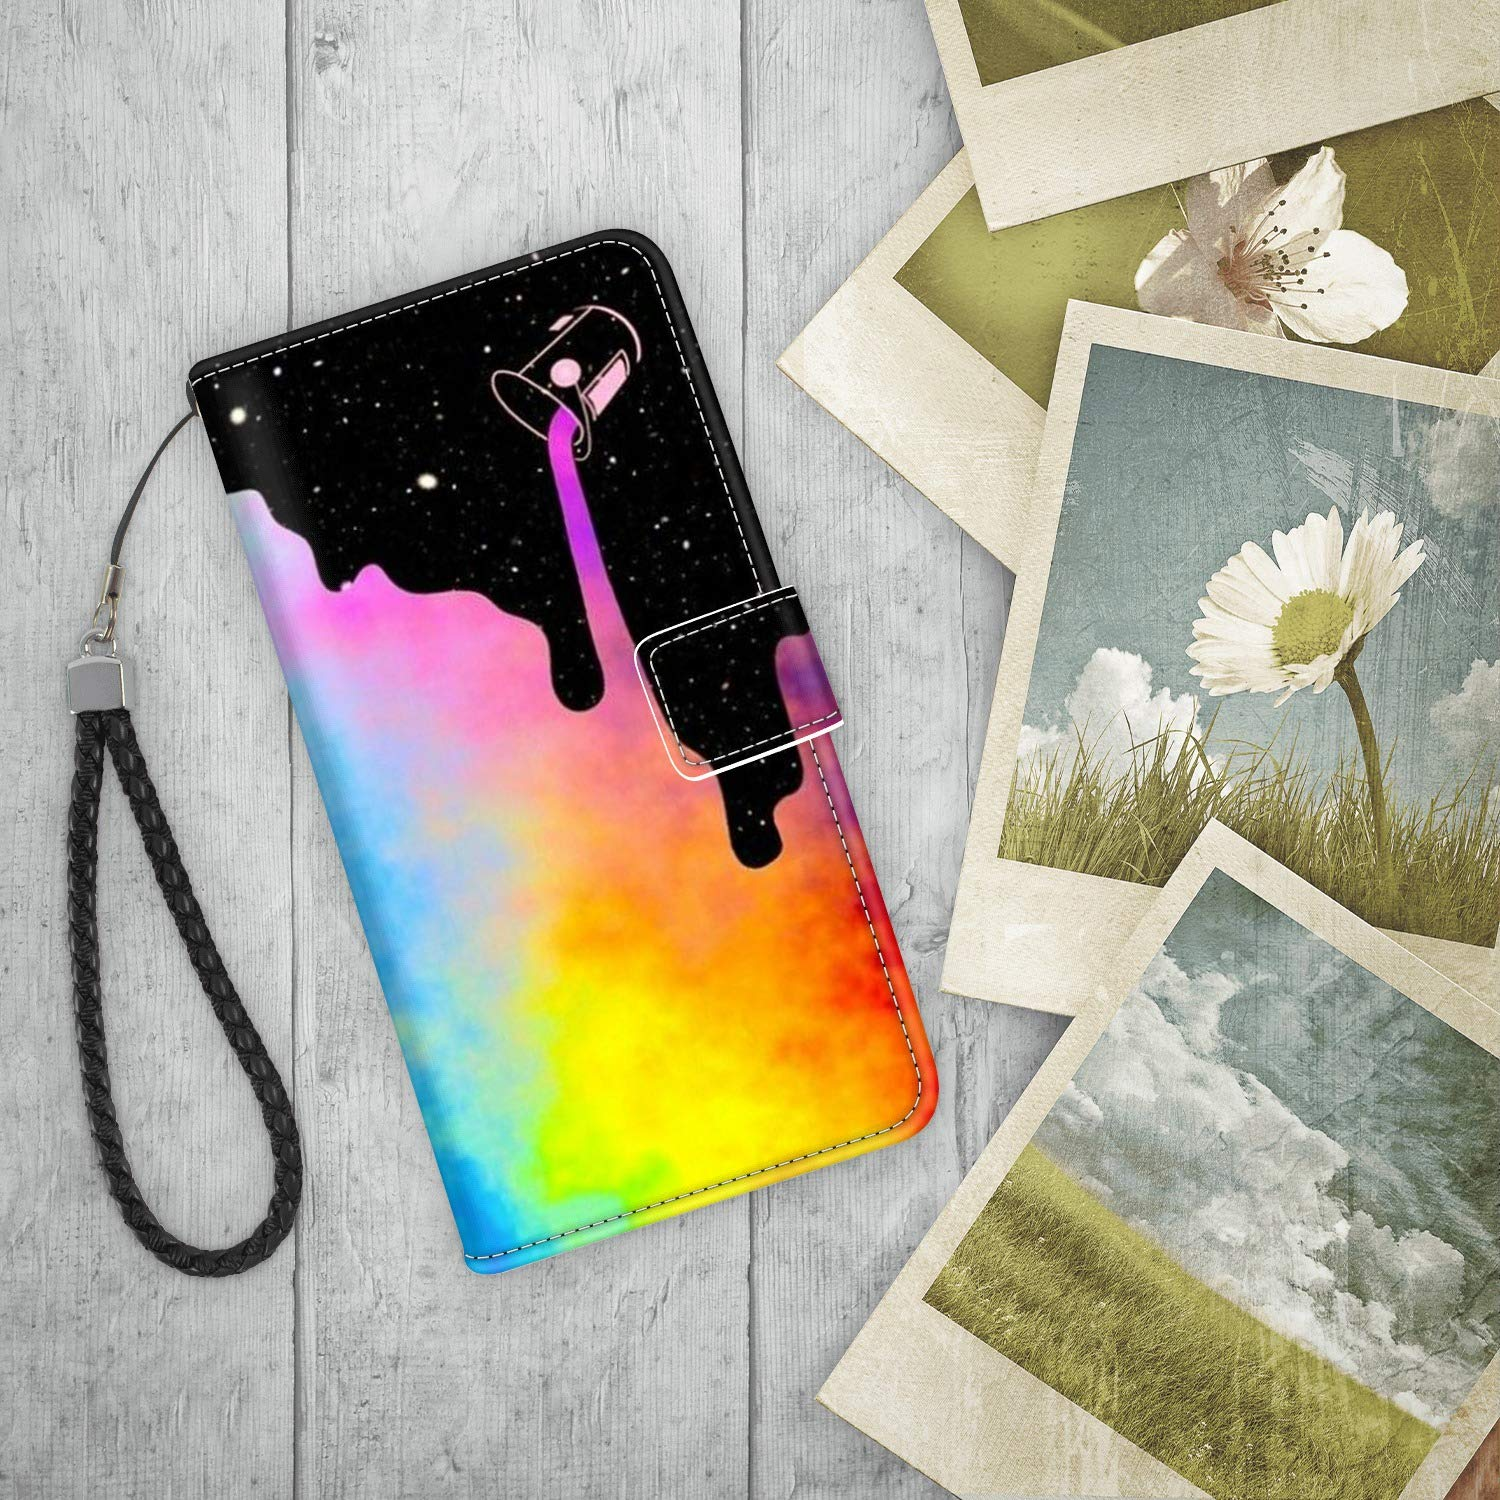 Pingge iPhone 7 8 Wallet Case Lovely Comic Colorful Cats Lightweight Slim Shockproof Cellphone Case Cover with Card Slots Kickstand for iPhone 7 8-1X